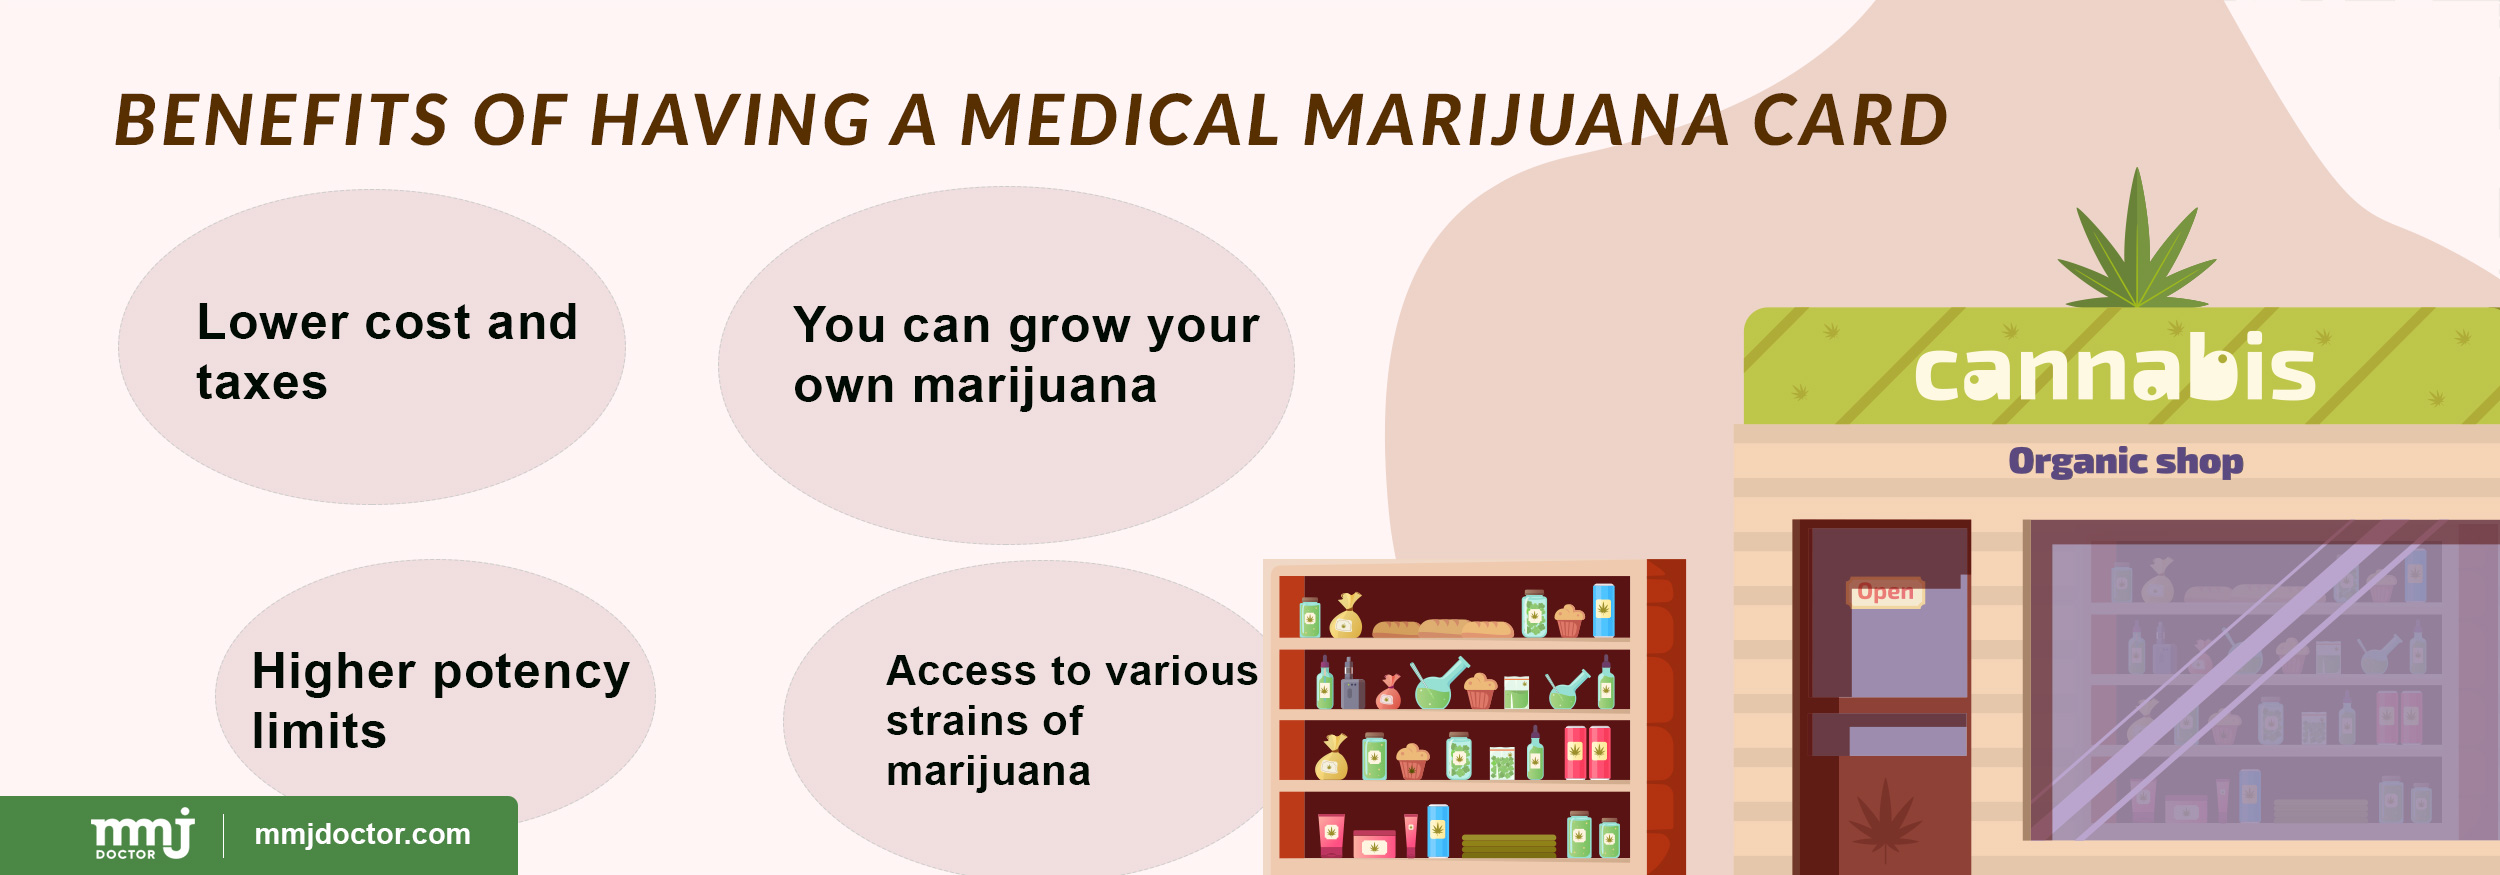 Medical Marijuana card benefits